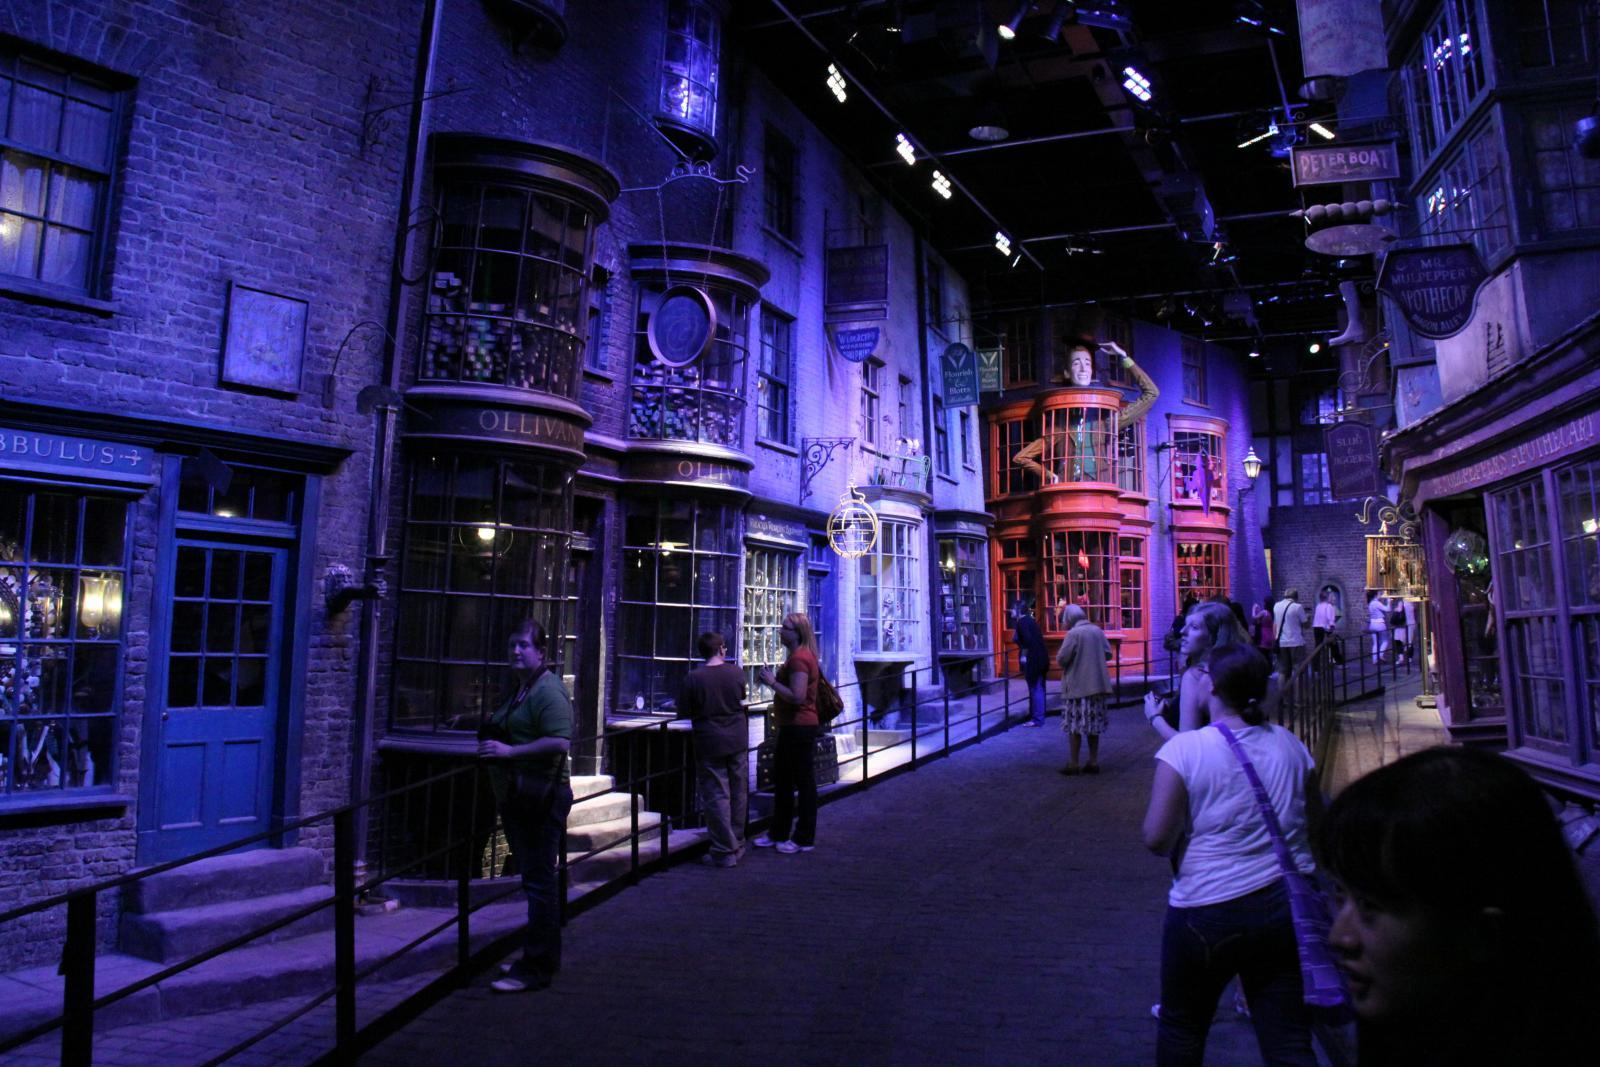 Harry Potter in London: tours, walks and more